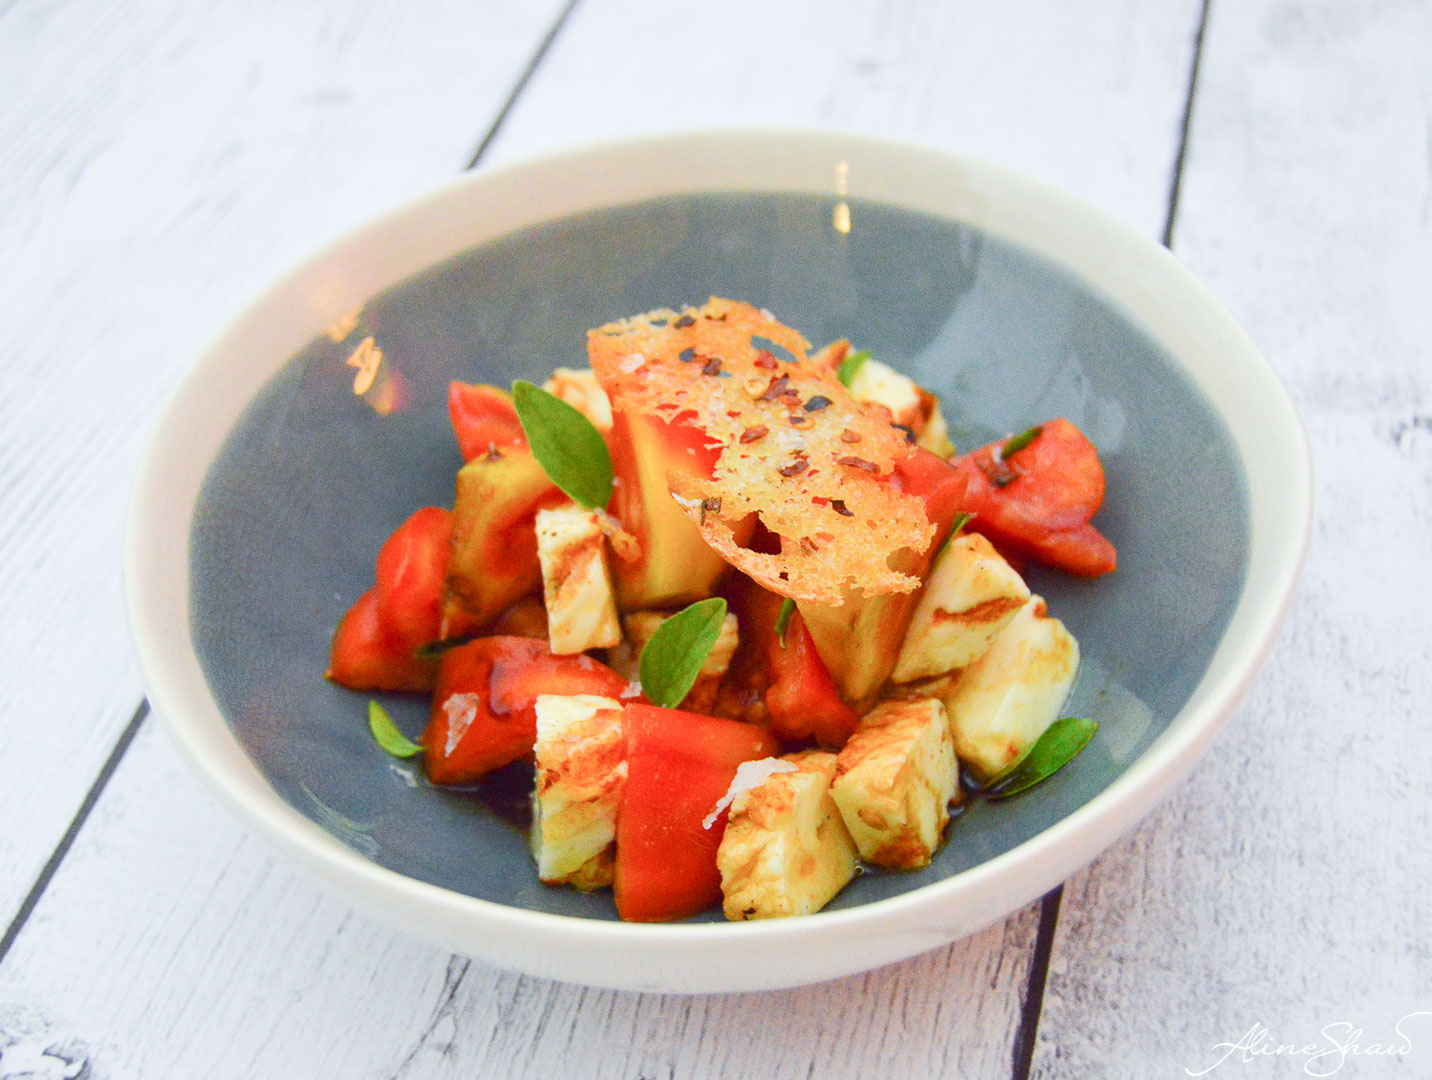 Tomato Salad with Grilled Coalho Cheese and Garlic Croutons